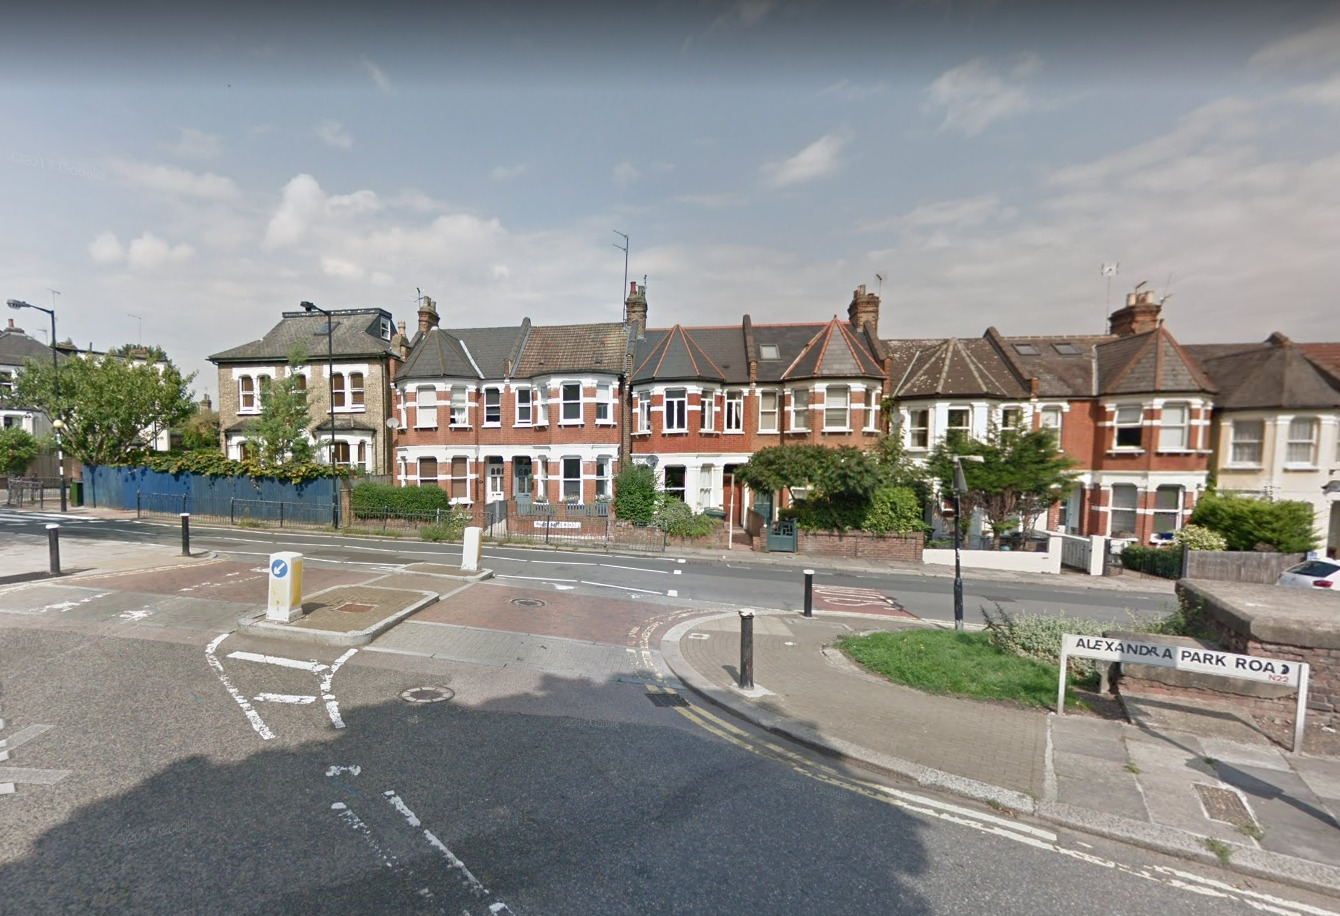 Houses in the west of Haringey (photo: Google Maps)